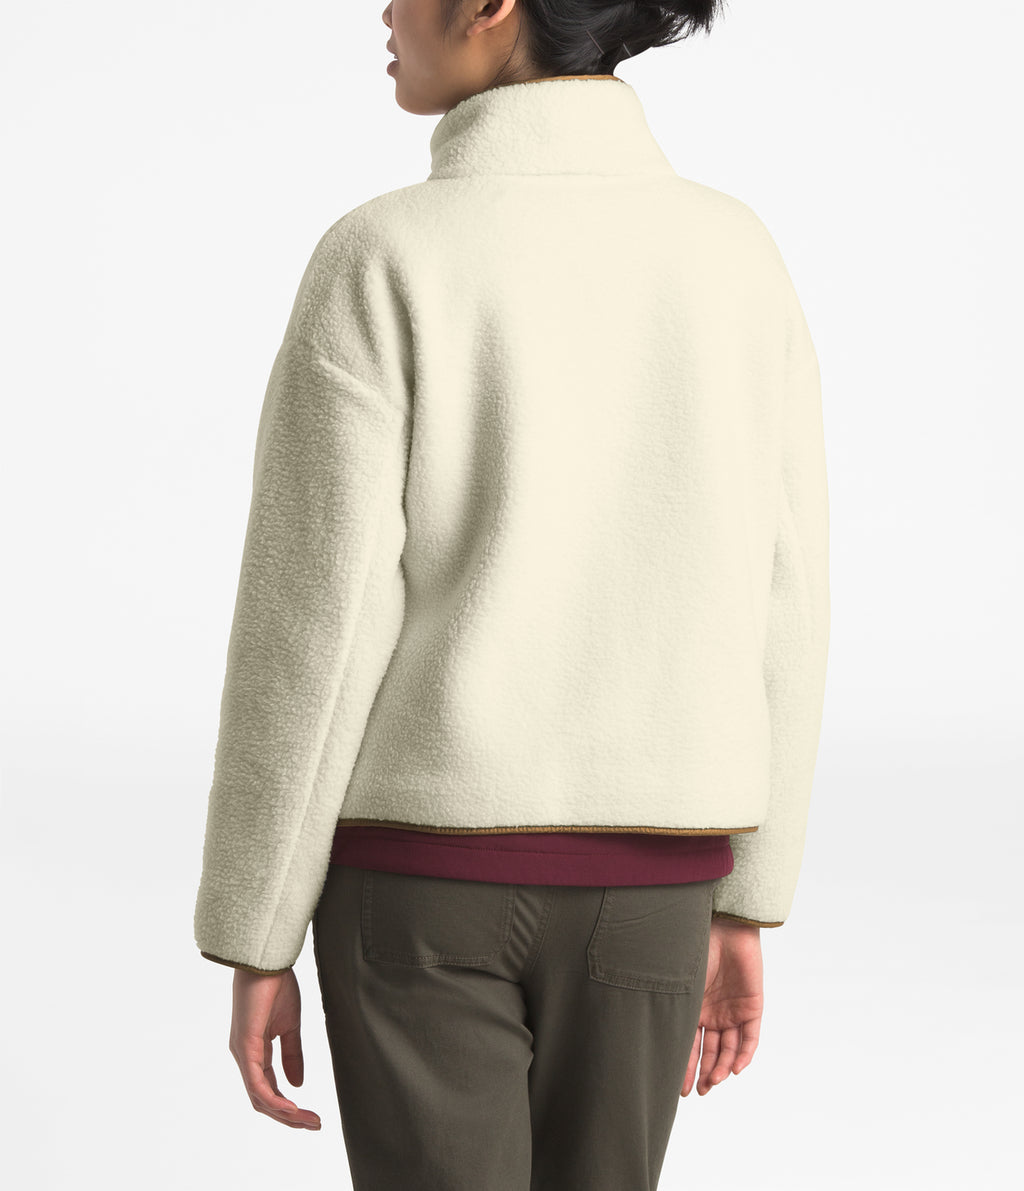 CRAGMONT FLEECE